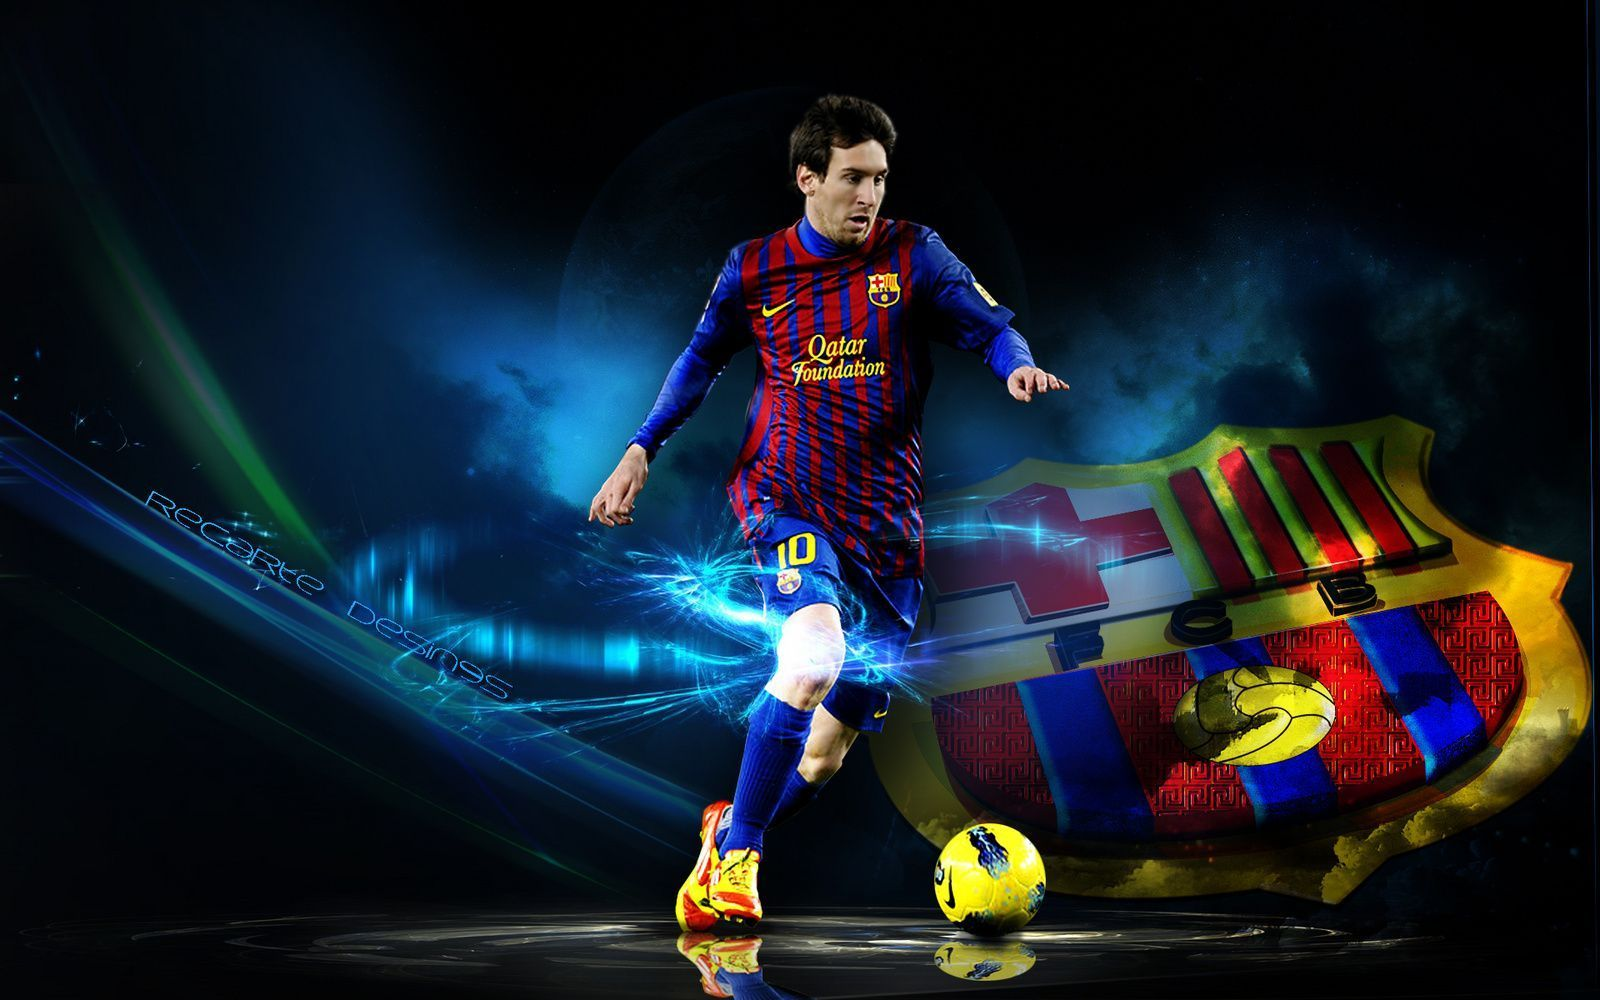 desktop lionel messi kick football hd free background mobile download wallpaper img